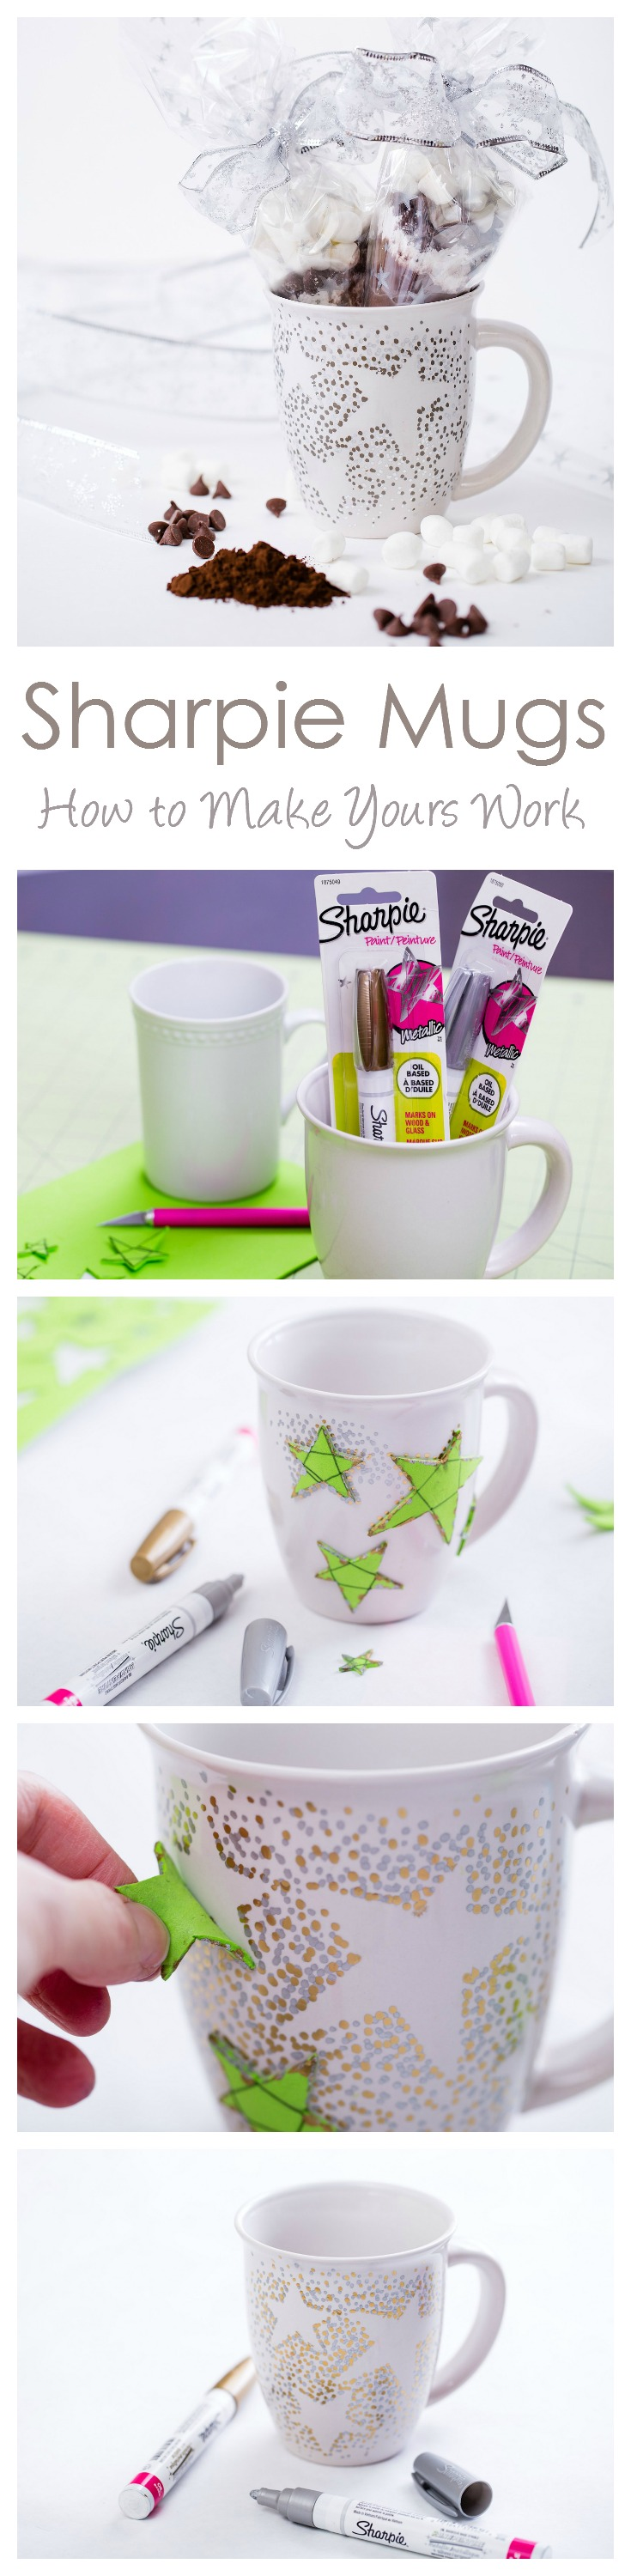 sharpie-mugs-that-work.jpg